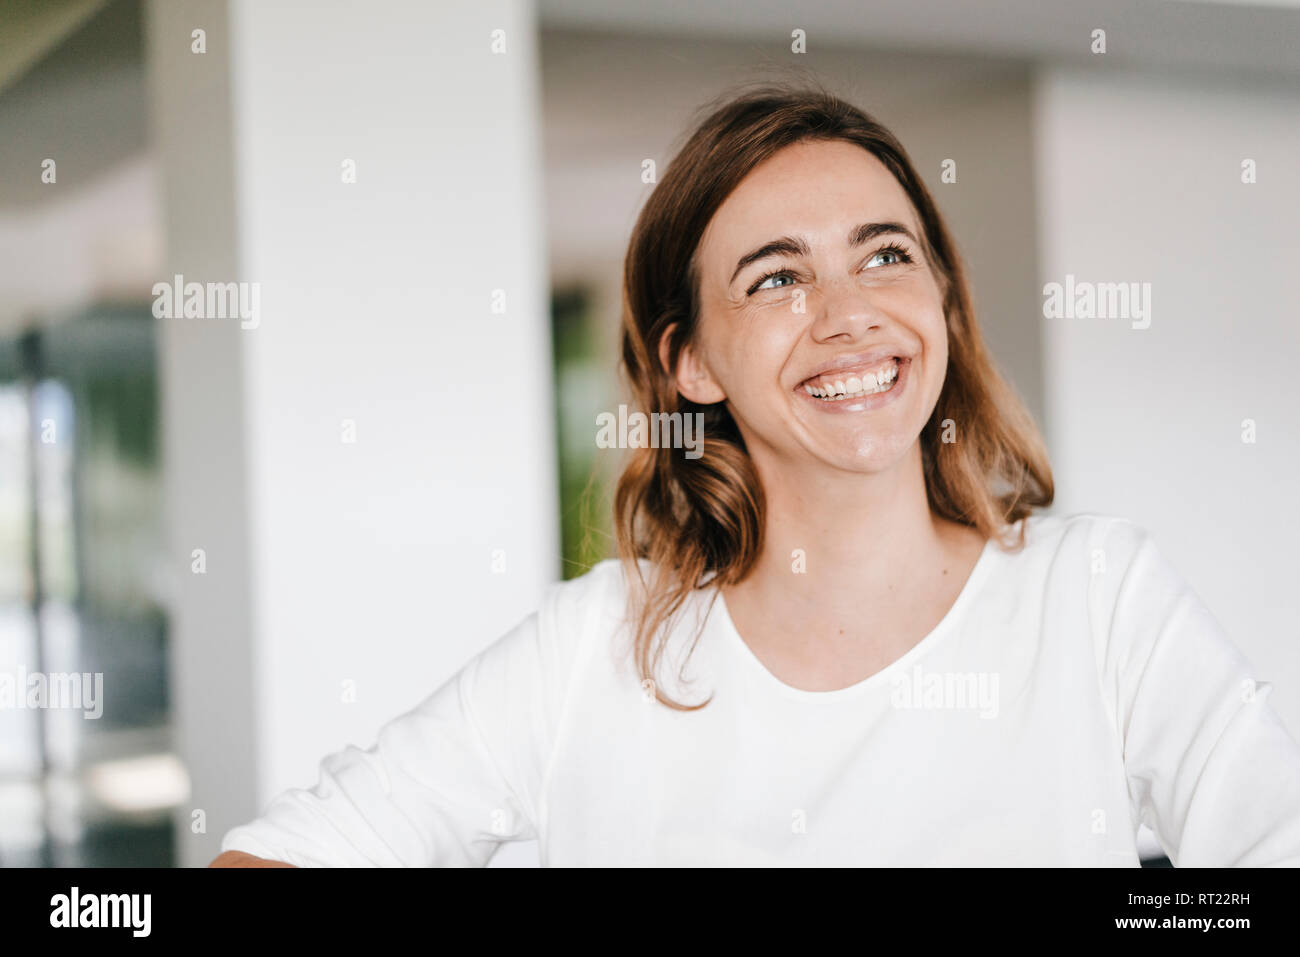 Portrait of a beaming young businesswoman - Stock Image